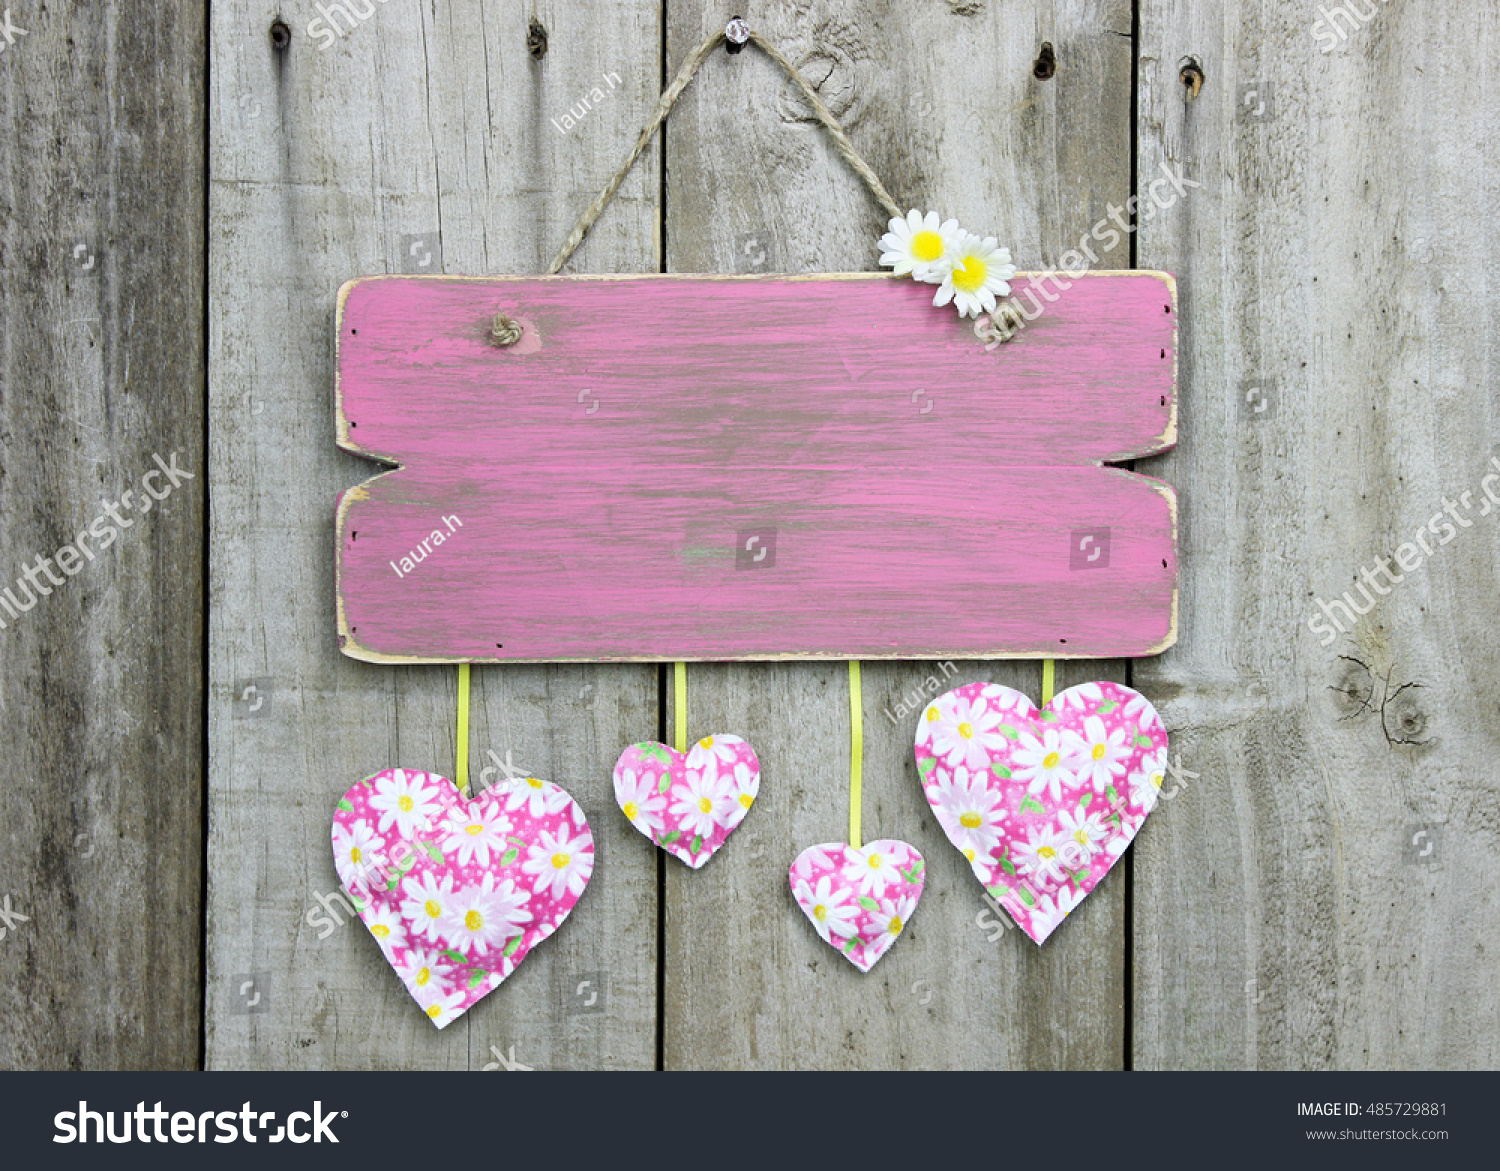 Blank Rustic Pink Sign With White And Yellow Daisy Hearts Hanging On Antique Aged Wooden Background